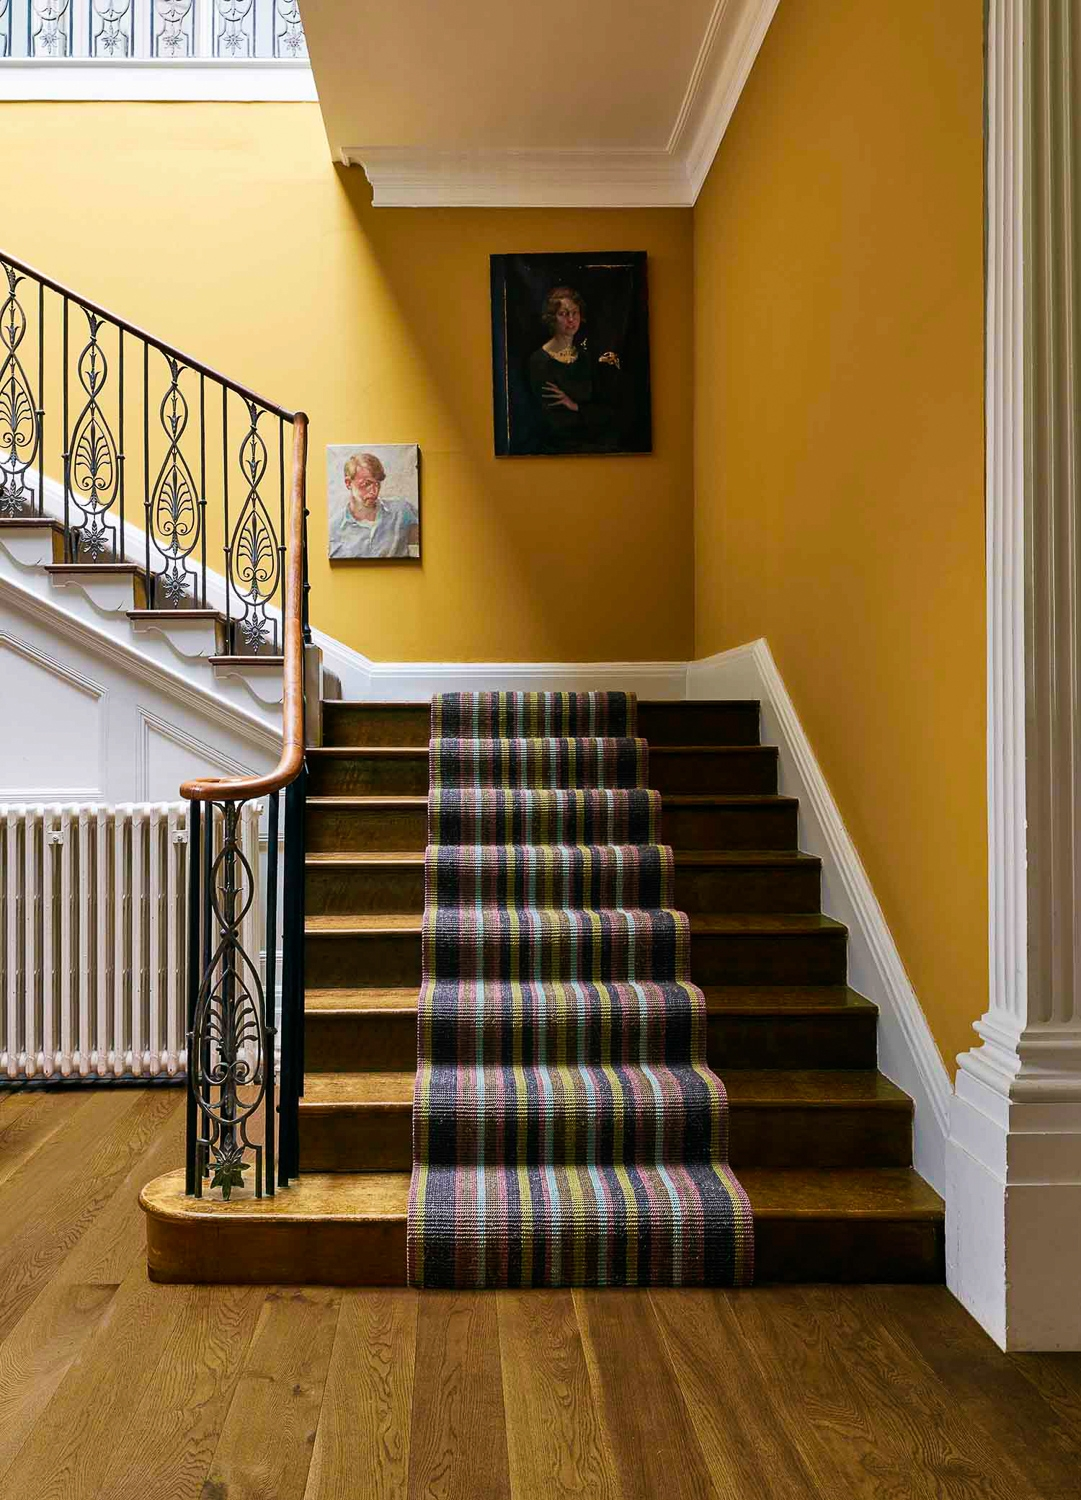 7 Lessons Learned From Our First Hallway Renovation Well I Guess   Stair Wall Colour Design   Wood Wall   Before And After   Room Wall   Hall Colour Combination   Family